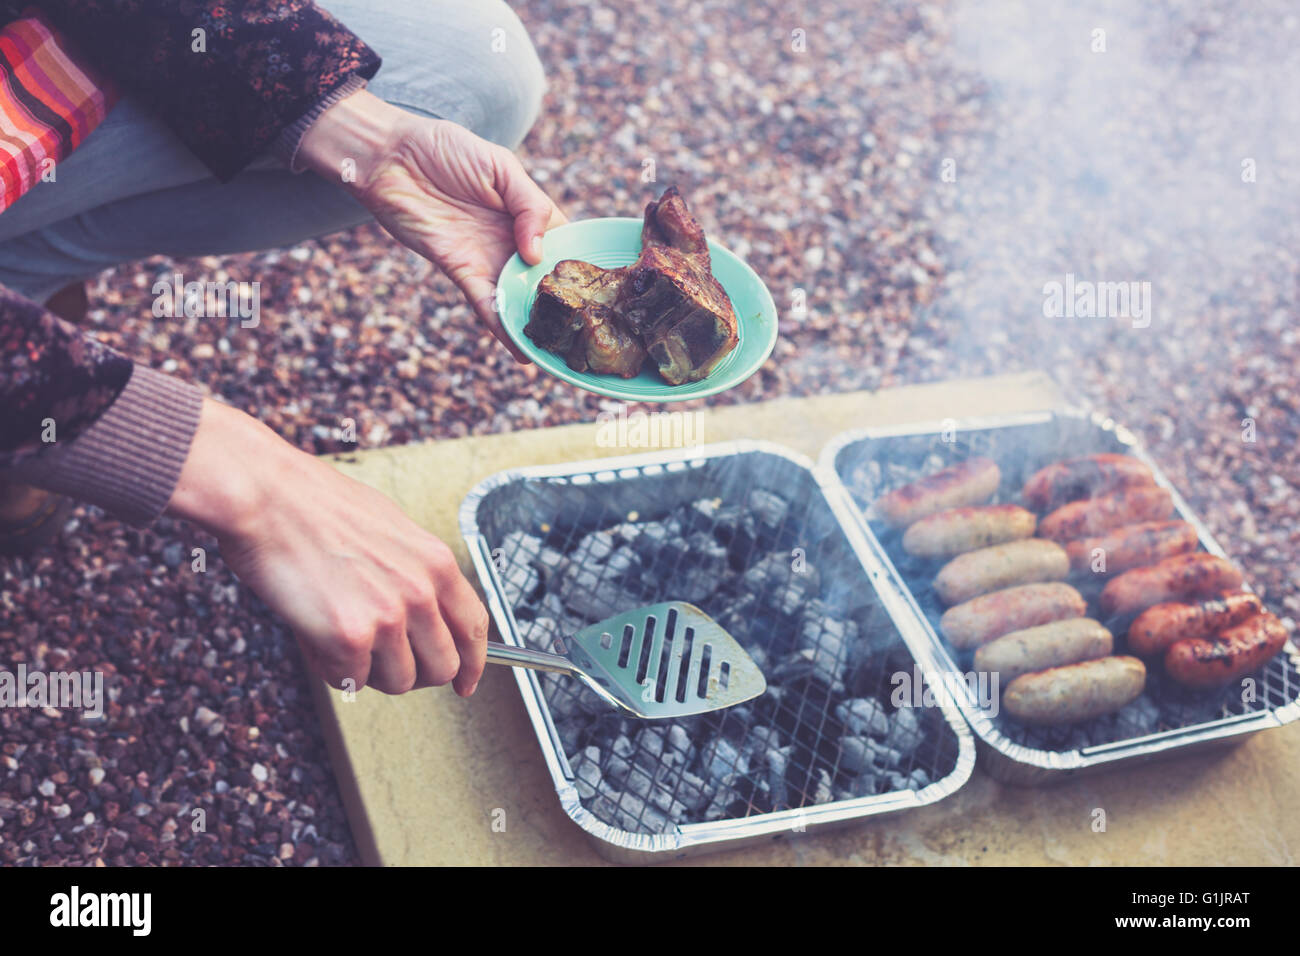 A young woman is cooking meat on a barbecue - Stock Image